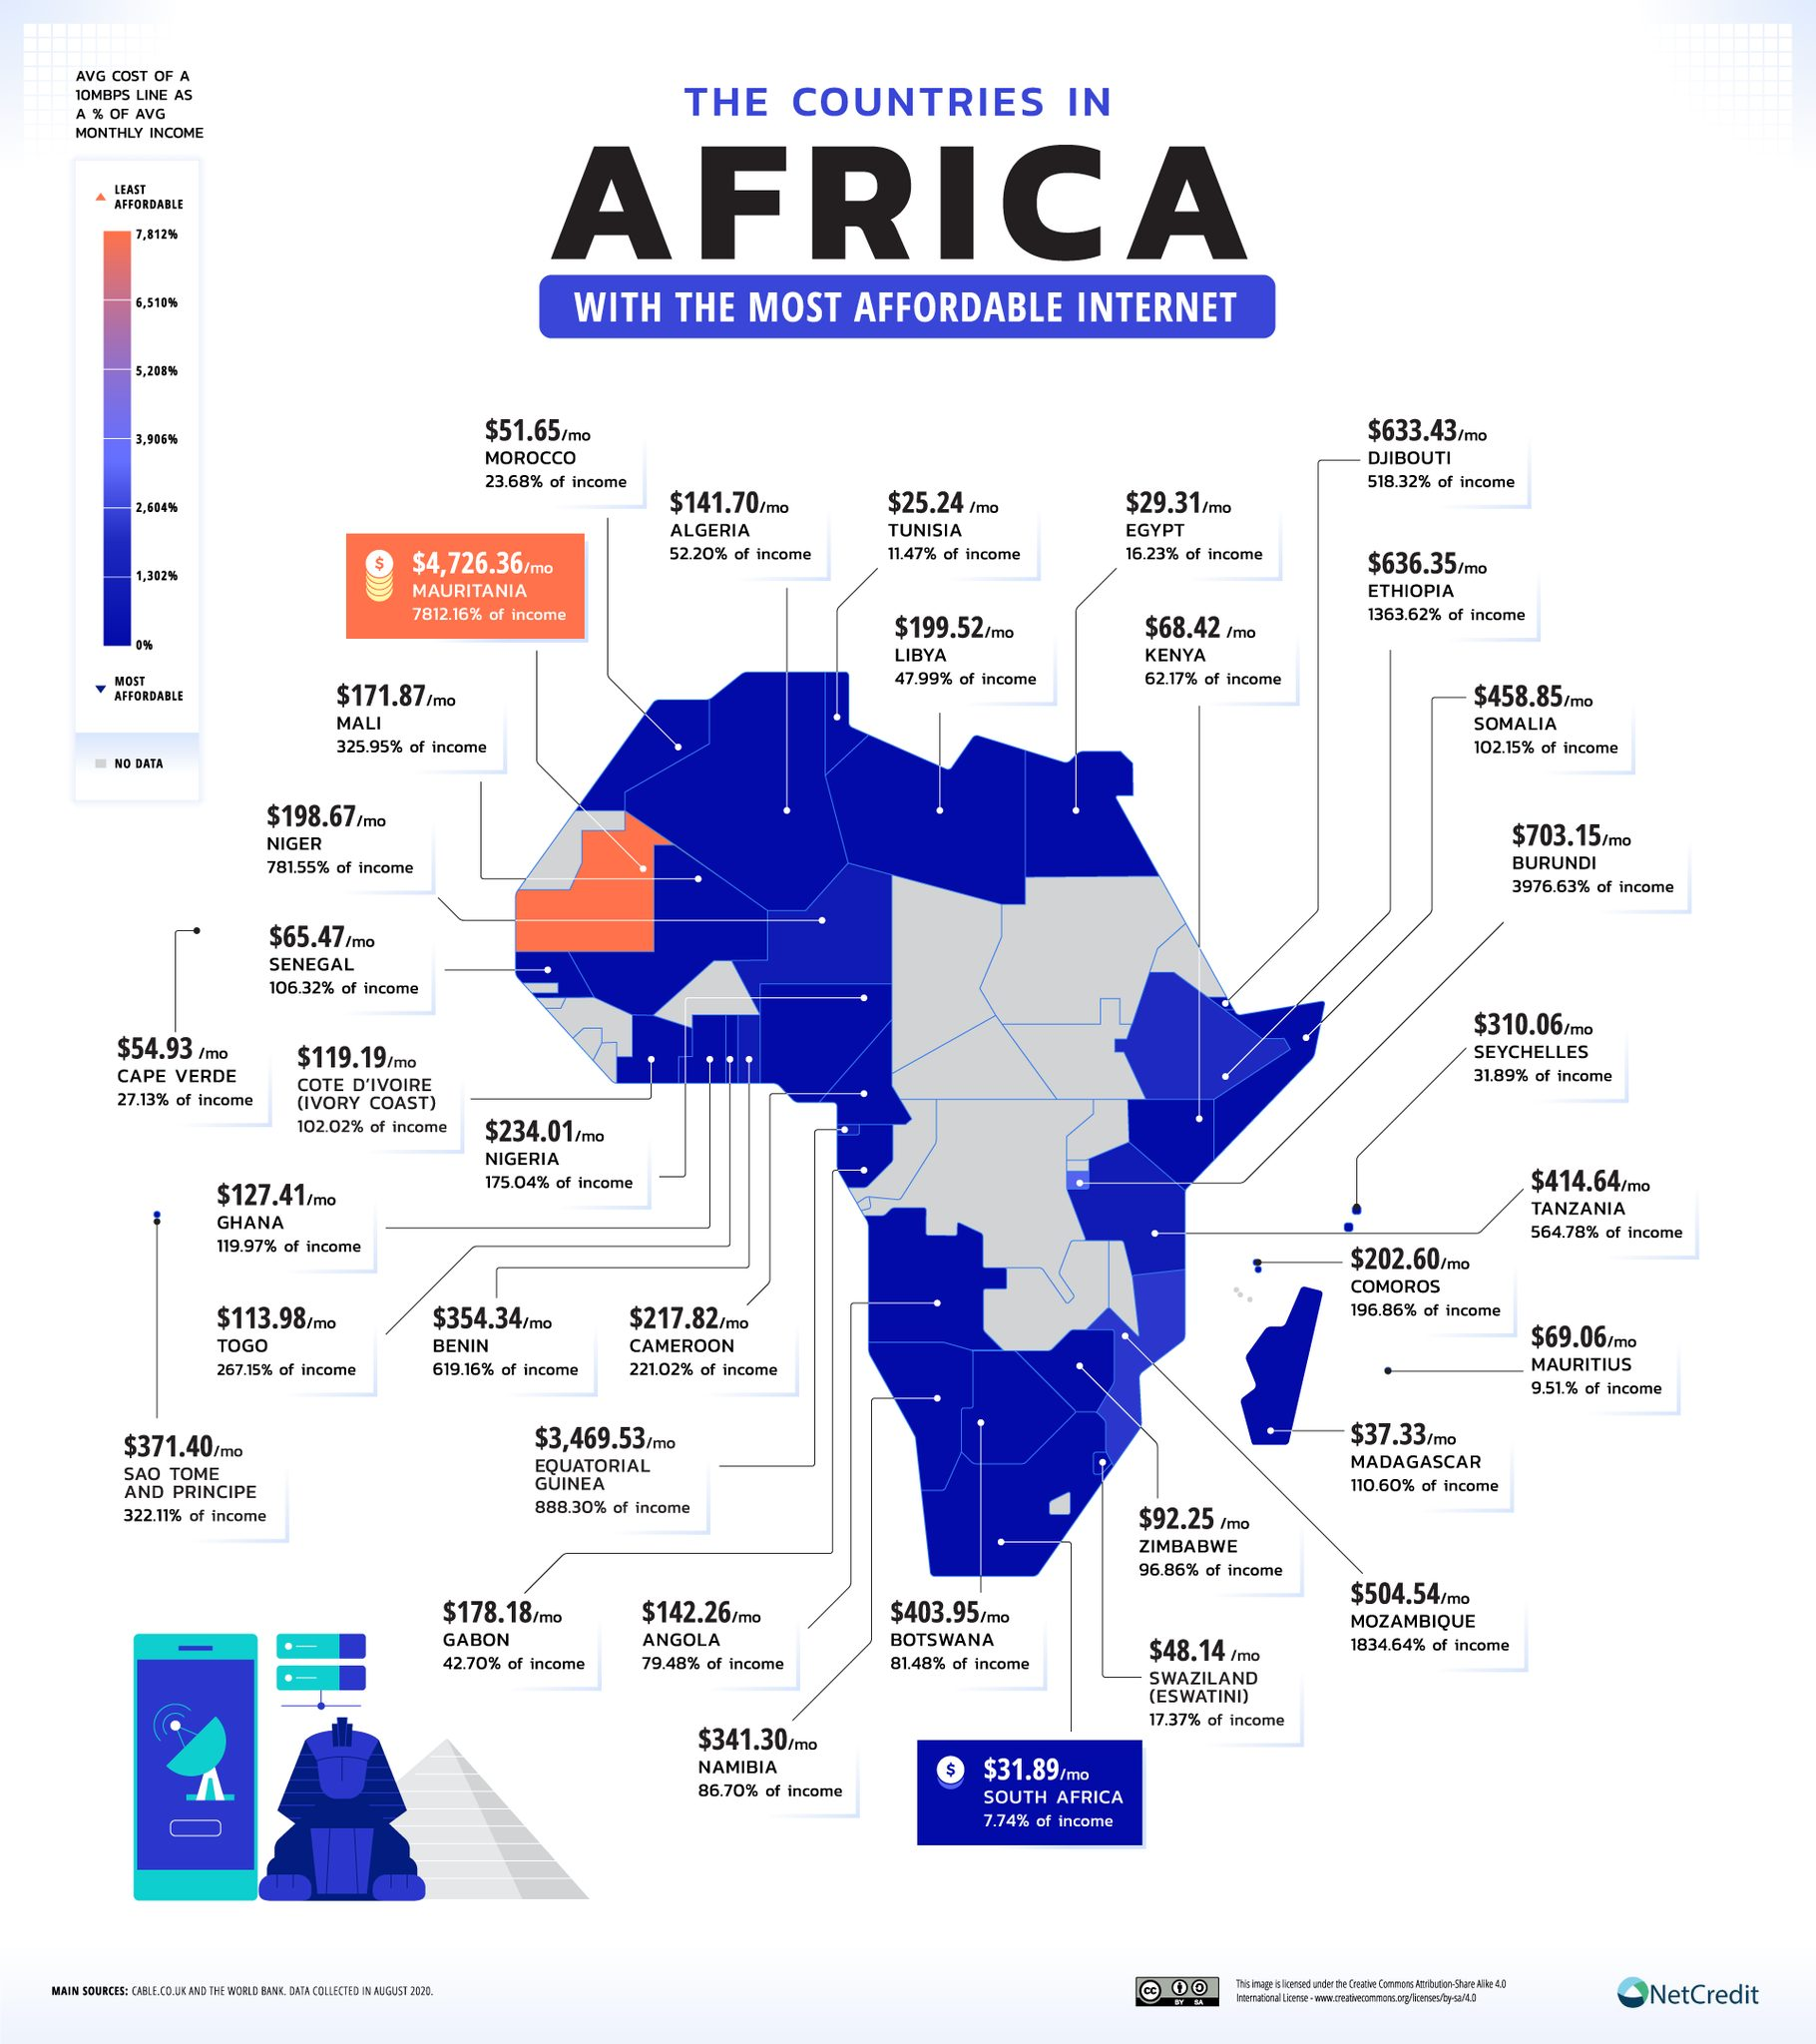 Infographic by NetCredit shows internet affordability in Africa.